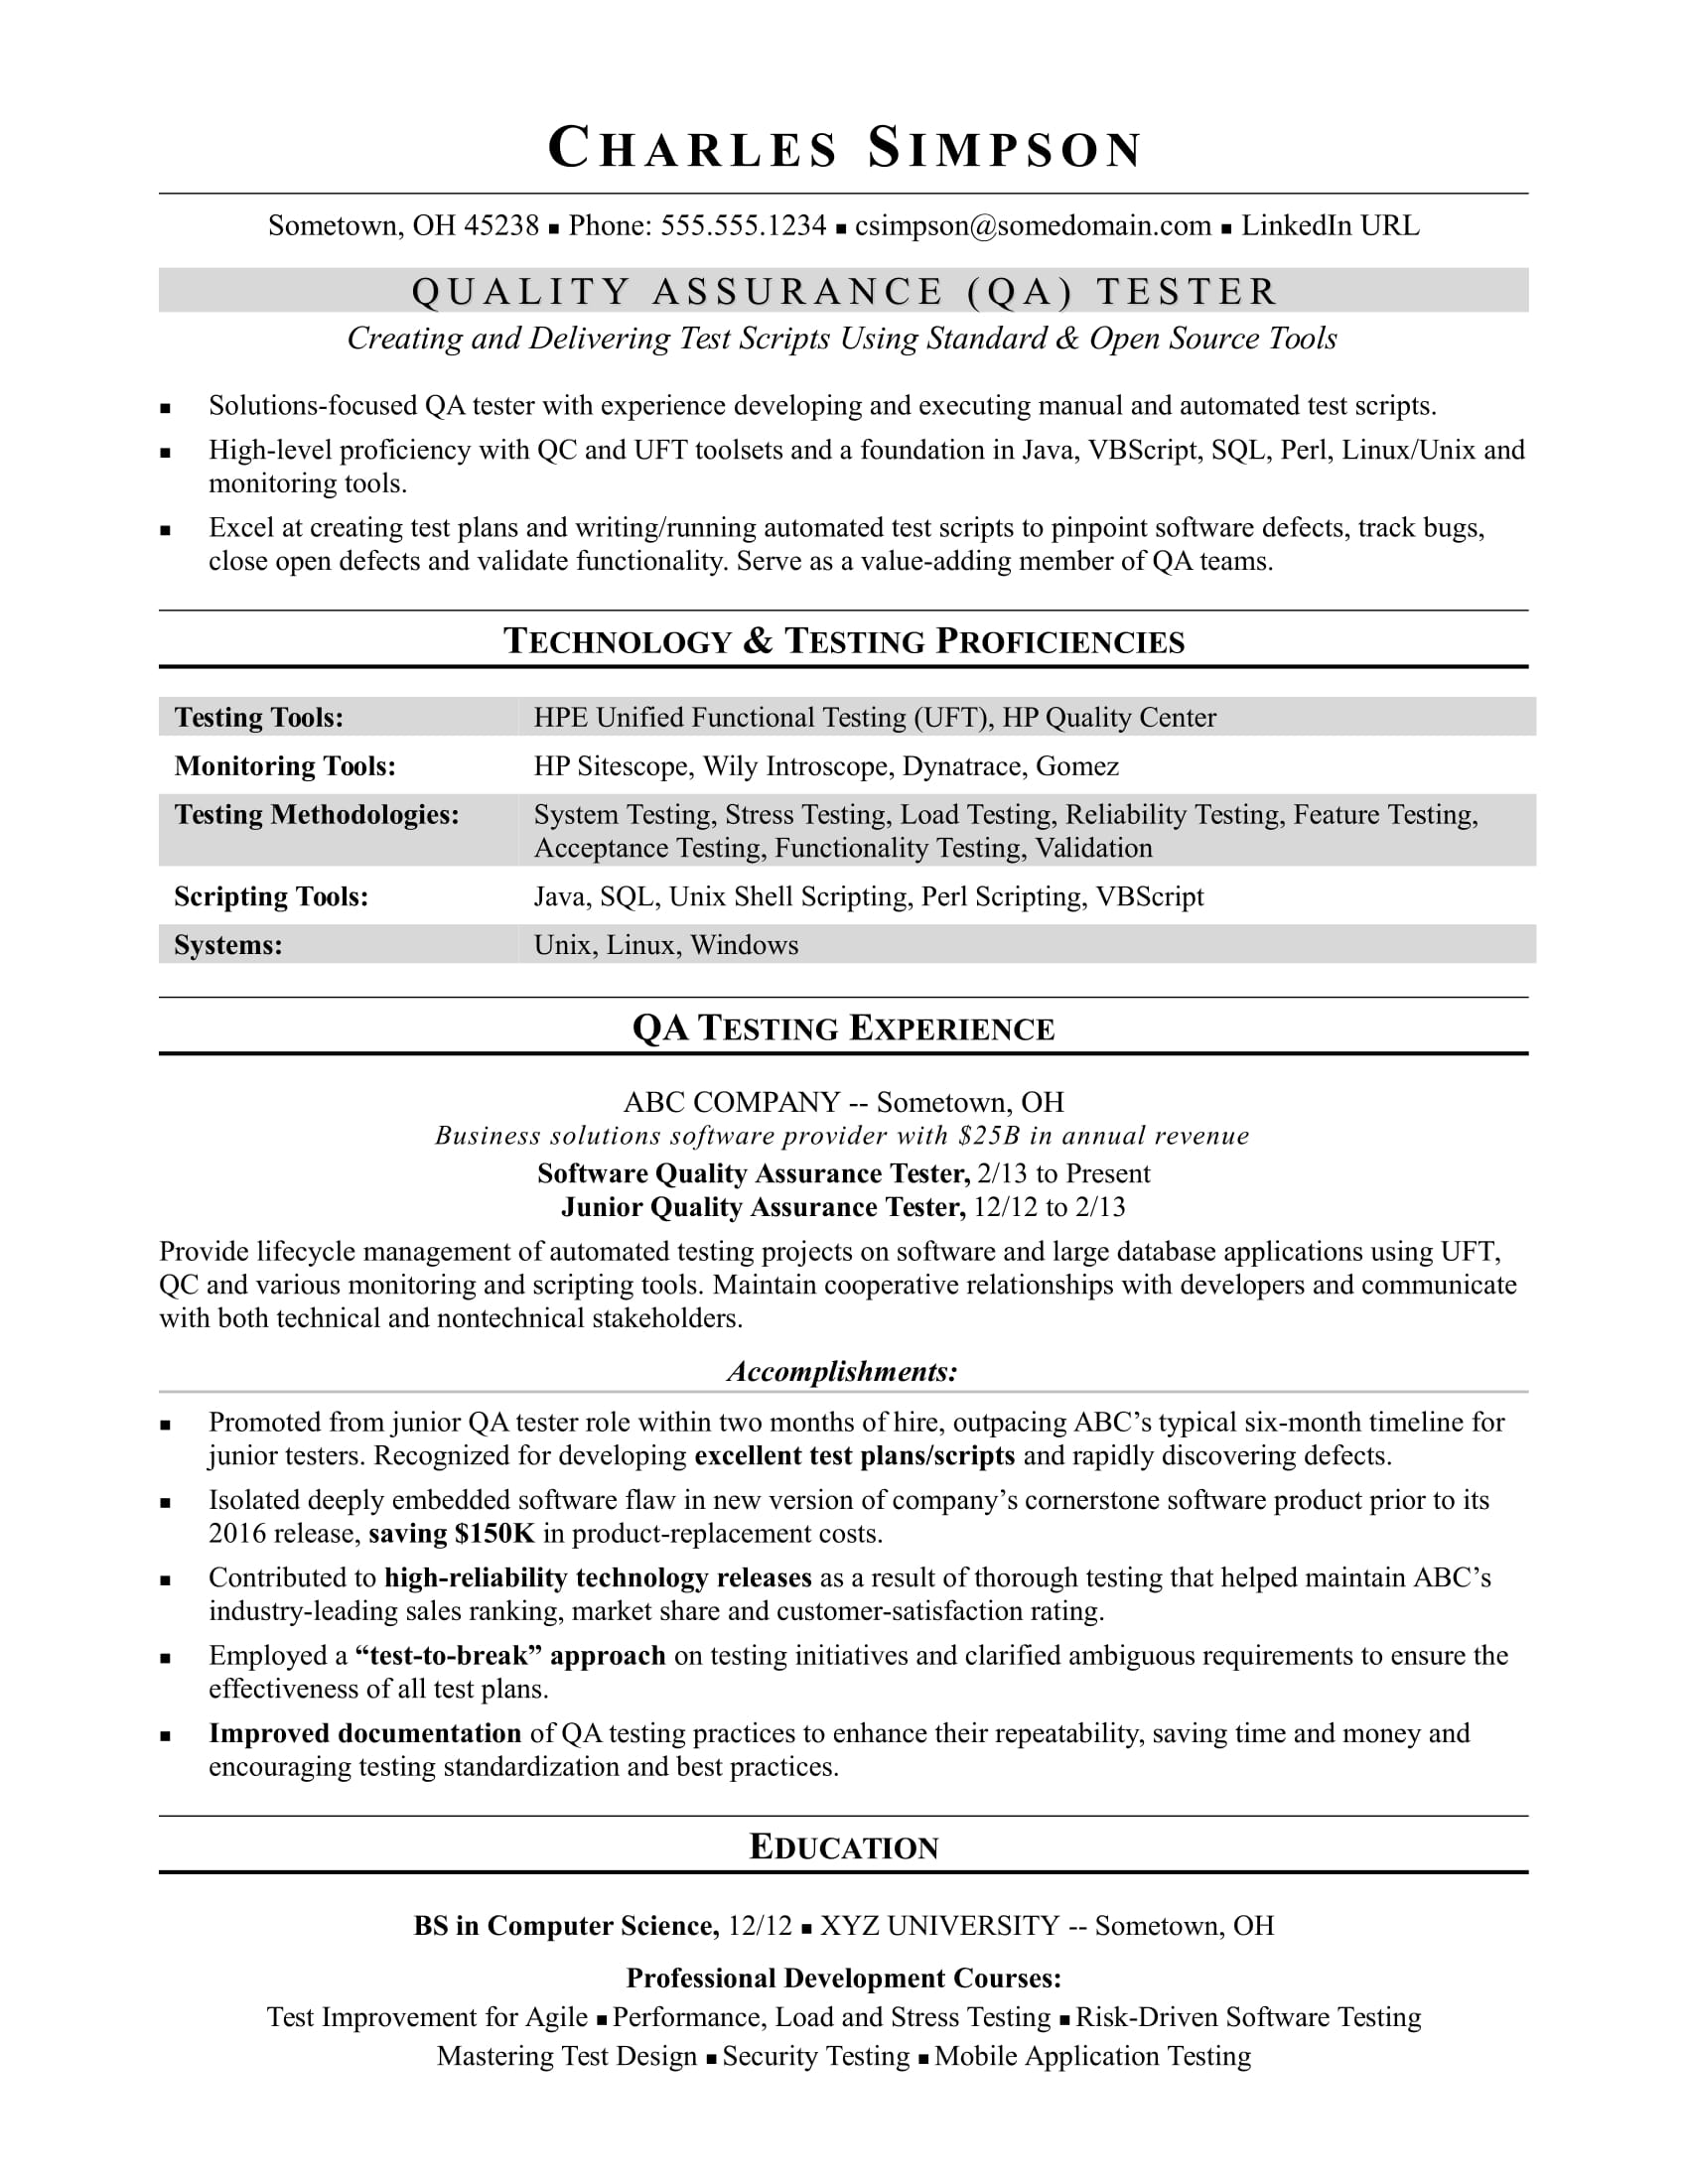 Sample Resume For A Midlevel QA Software Tester  Qa Testing Resume